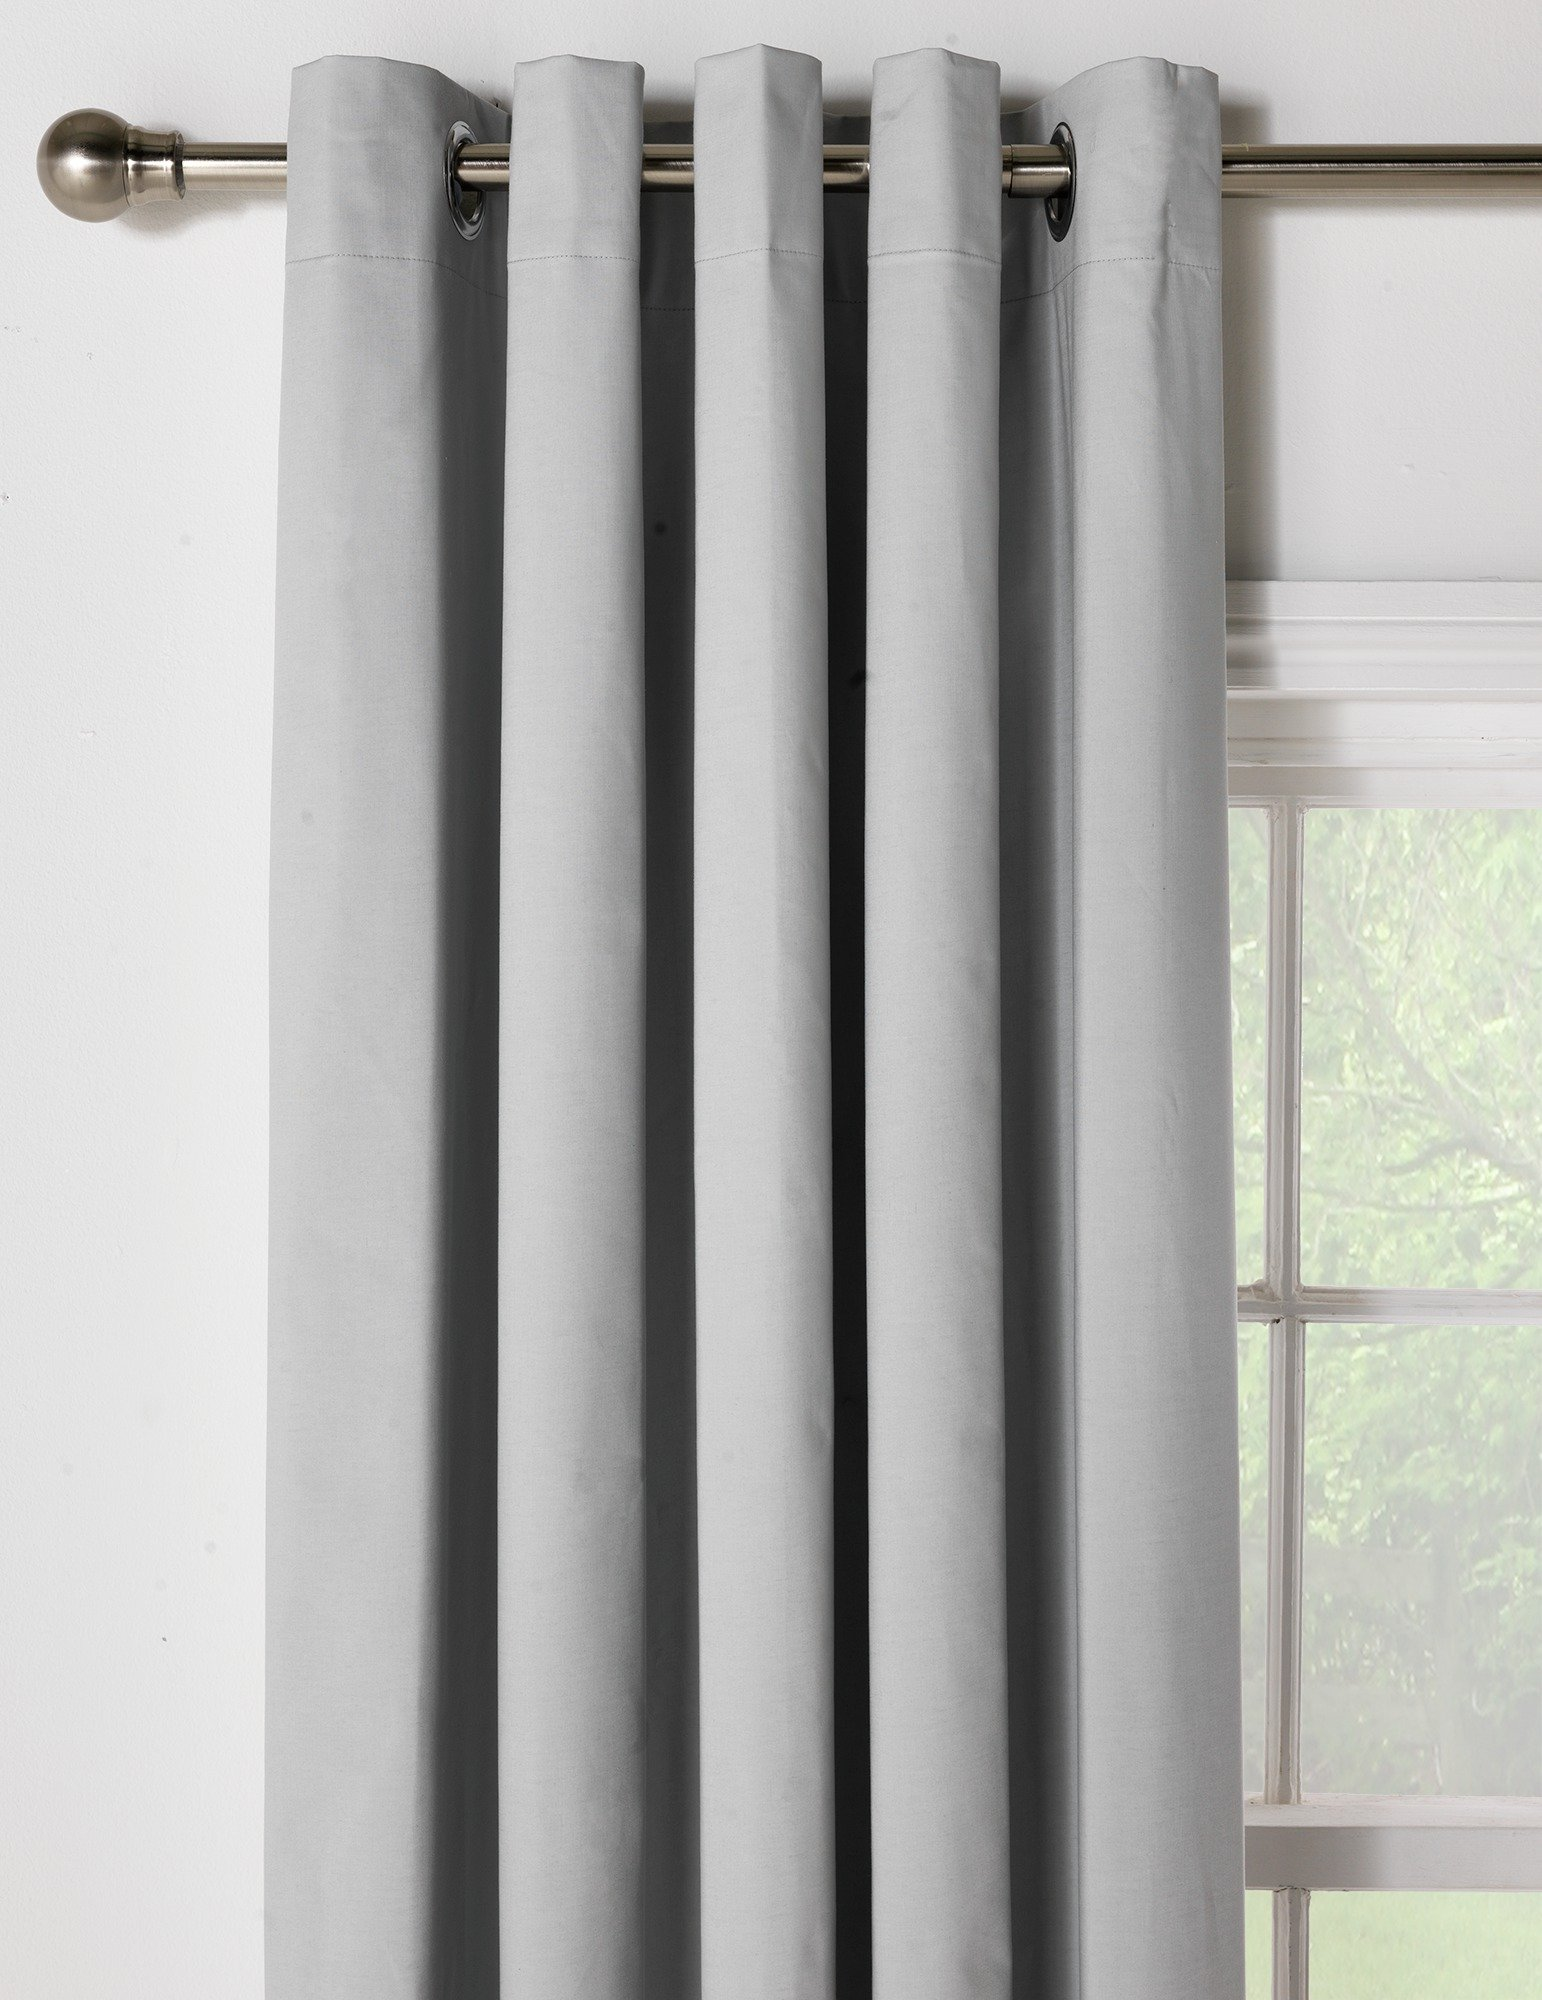 Image of HOME Blackout Thermal Curtains - 229x229cm - Dove Grey